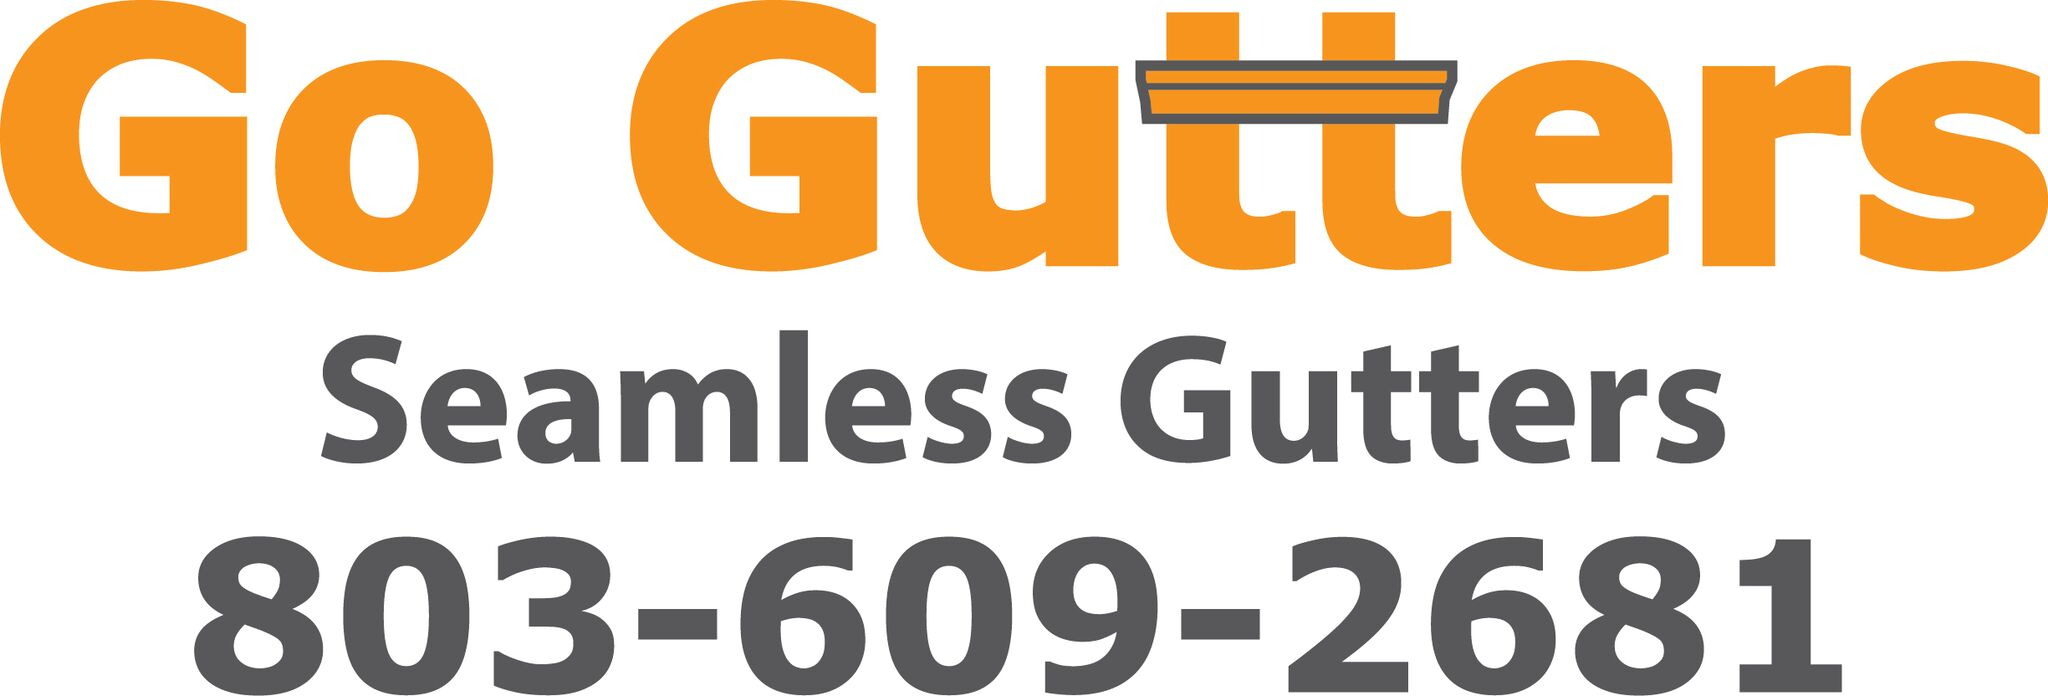 Image Result For Seemless Gutters